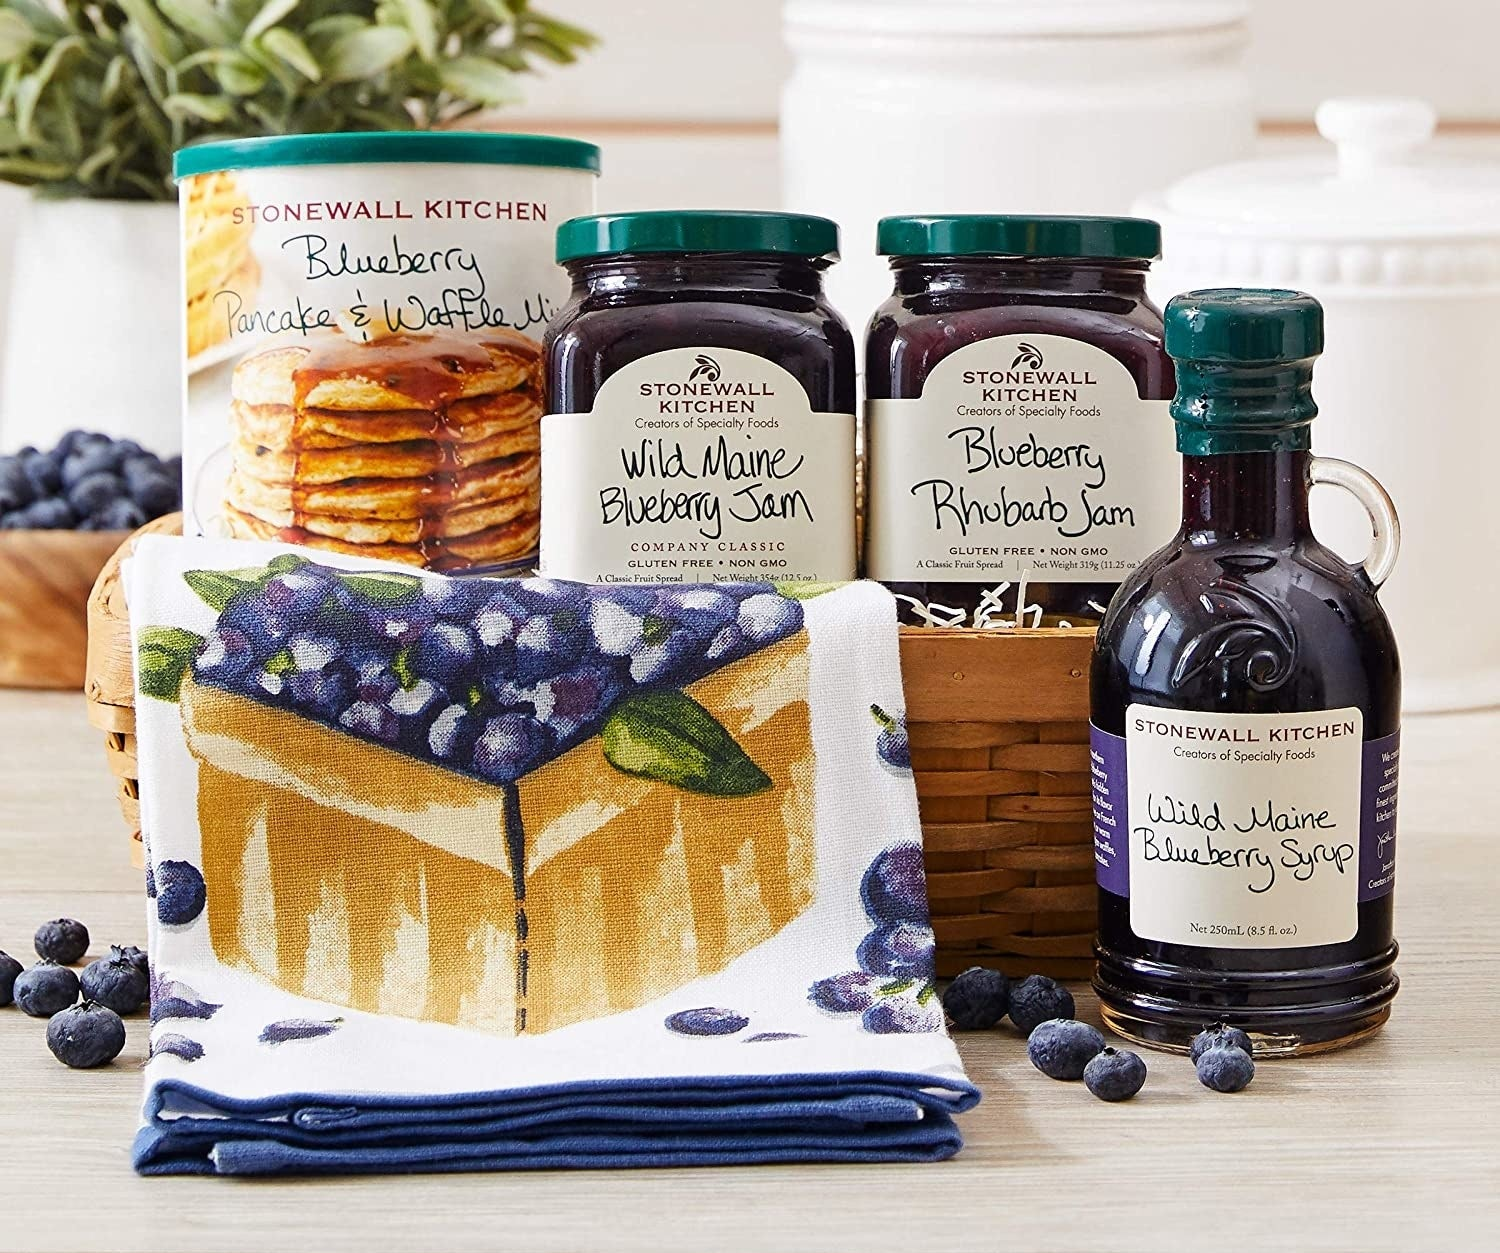 A collection of jams, pancake mix, and maple syrup in a basket with a tea towel